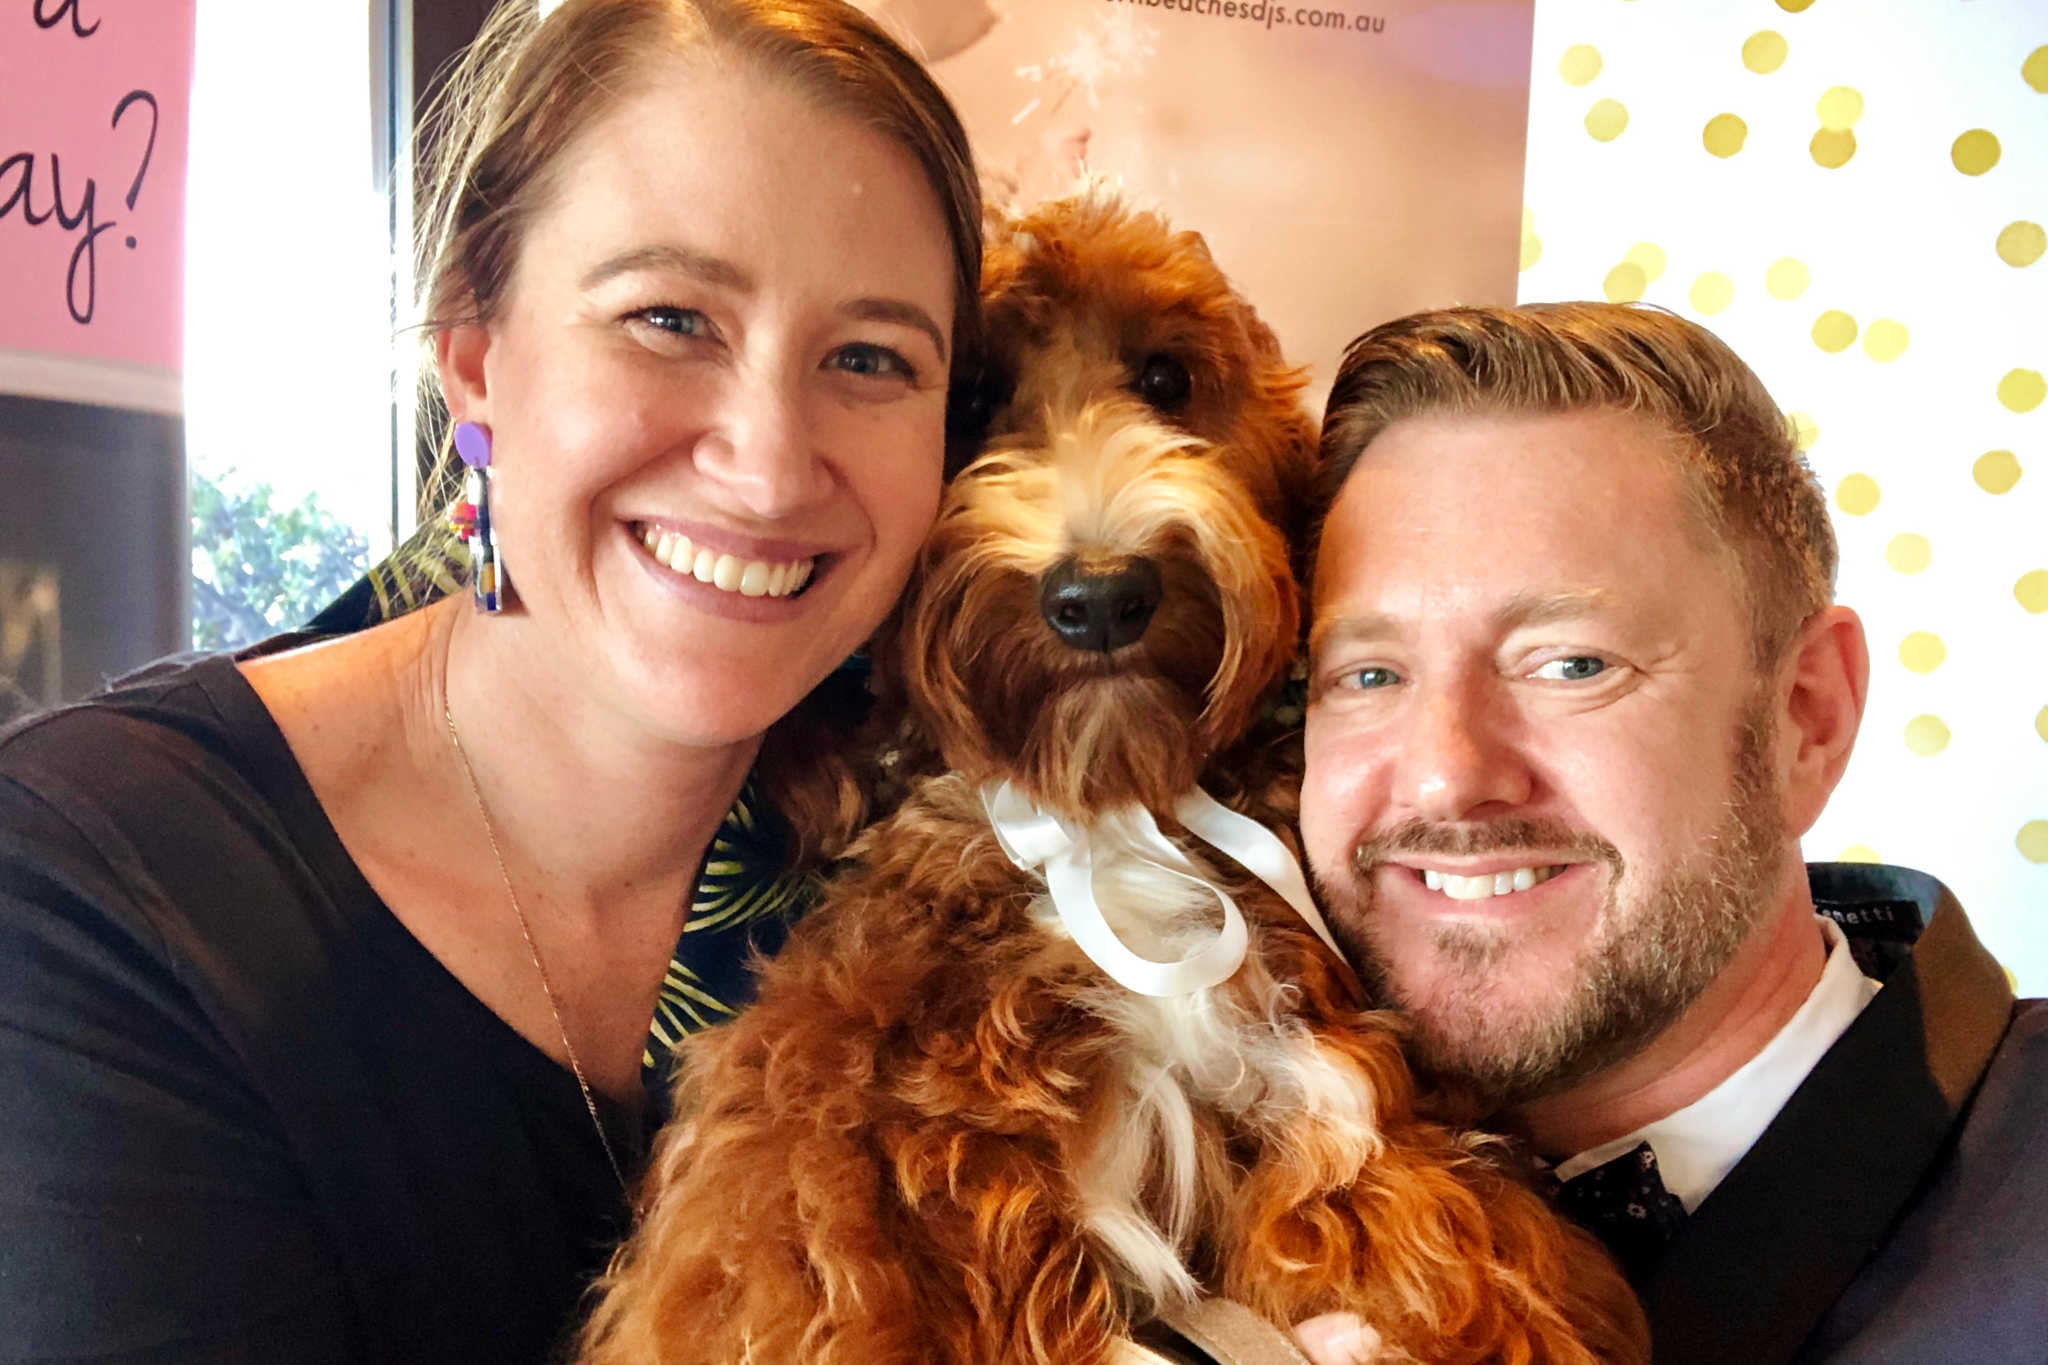 Wedding Paws Pet Sitting - Stephen Lee Marriage Celebrant Sydney